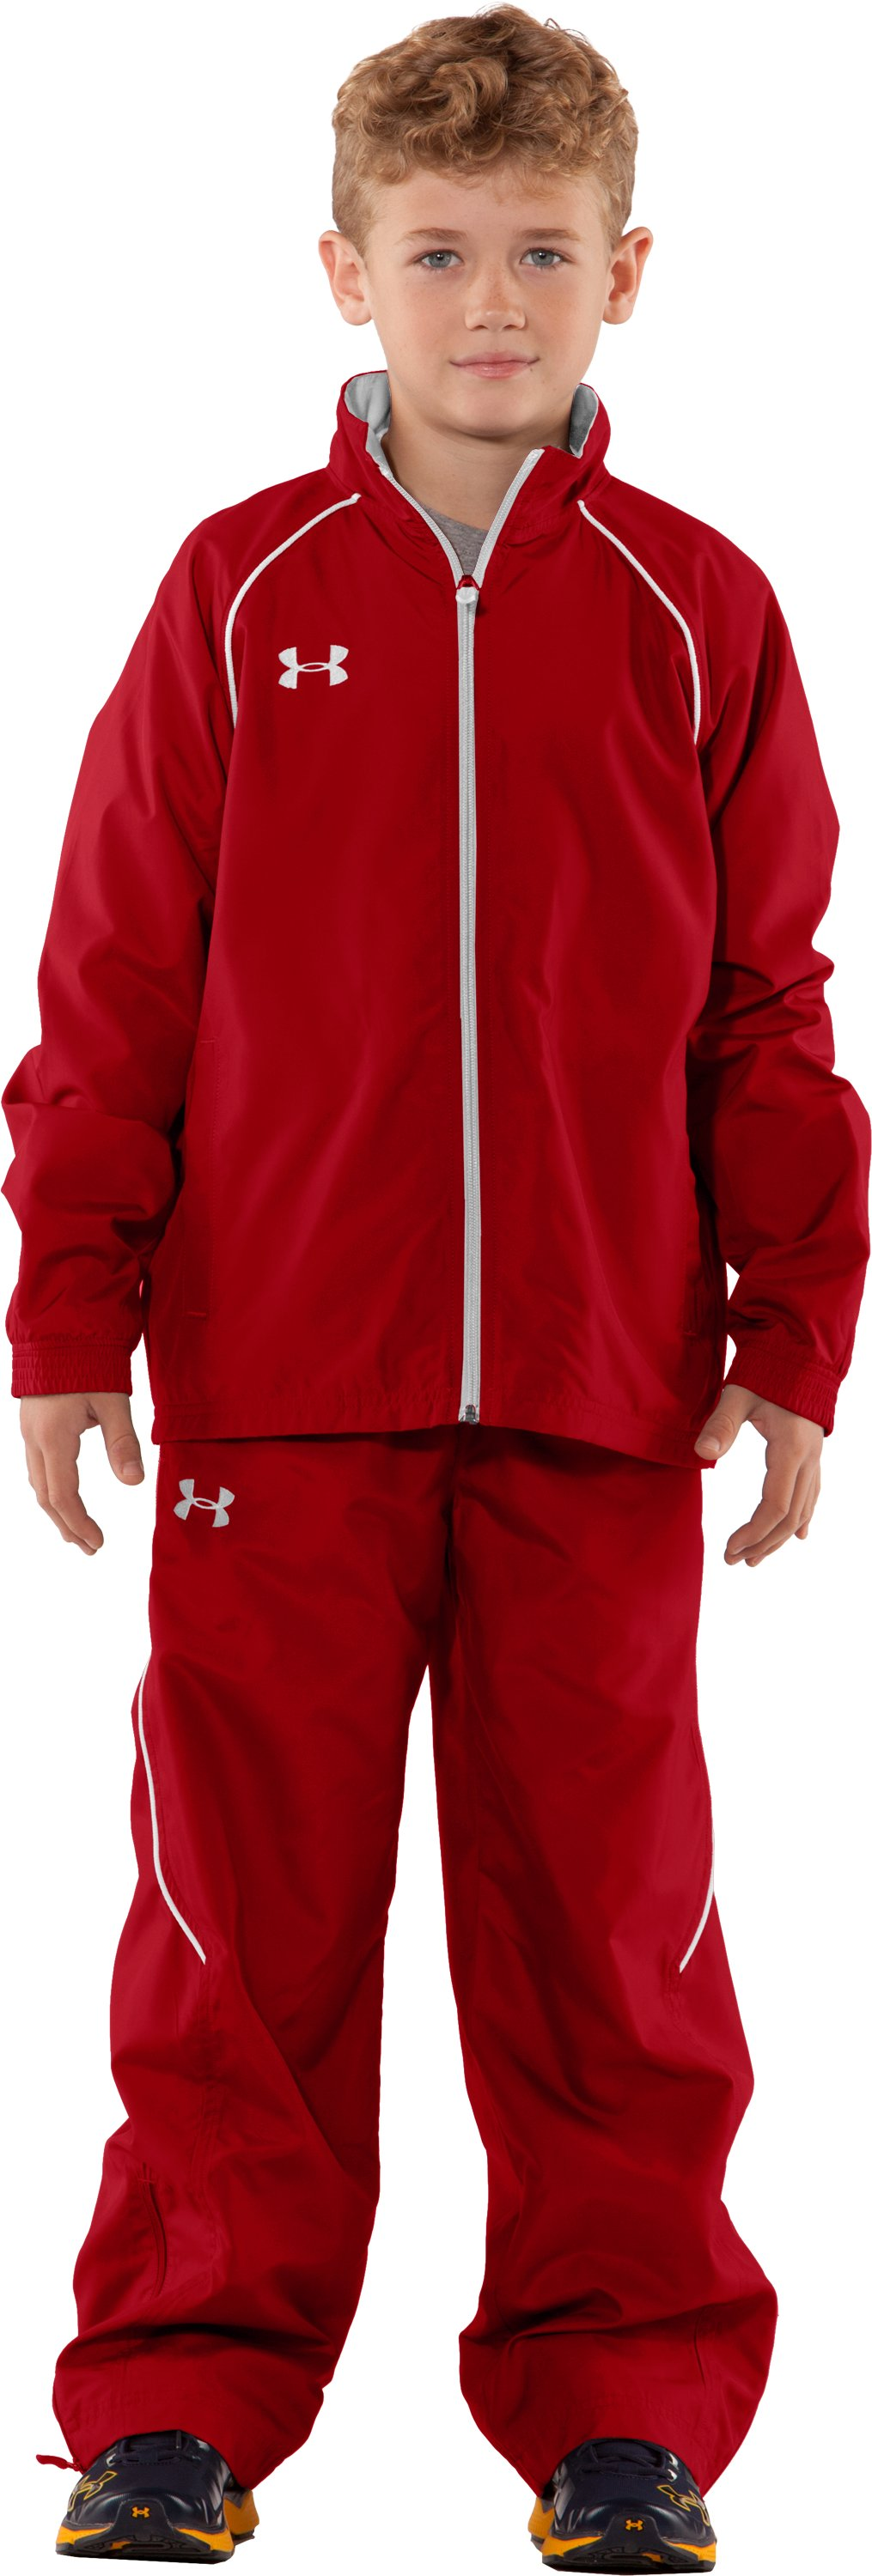 Boys' Advance Woven Warm-Up Jacket, Red, Front